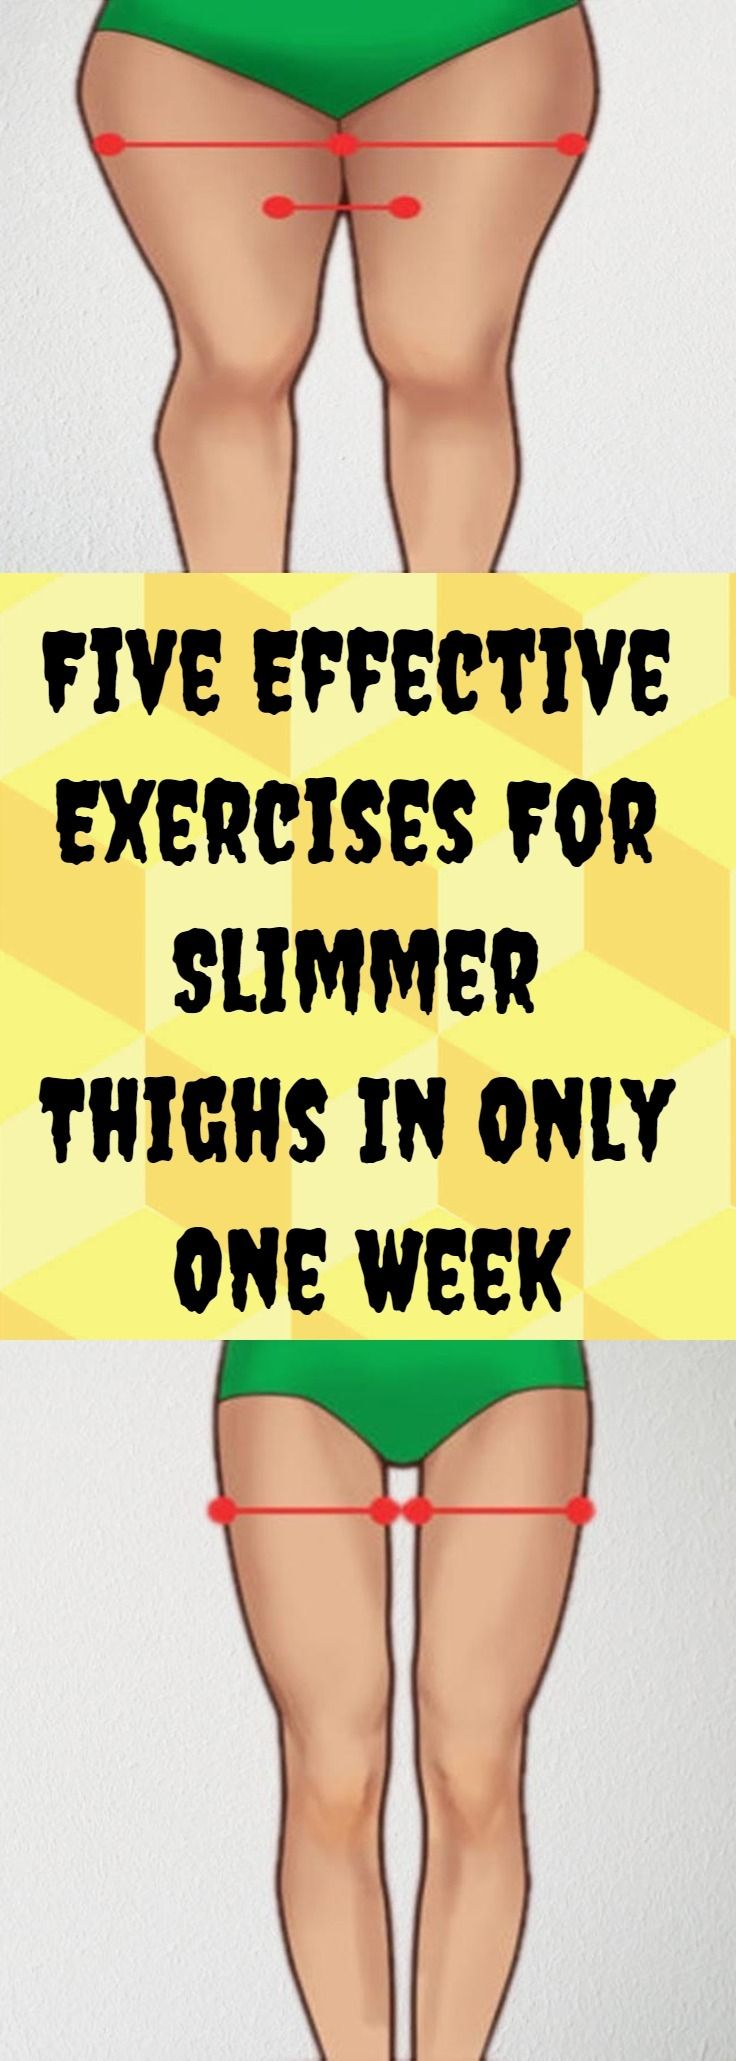 Pin by Janice Wiles on Mind & Body Slim thighs, Exercise